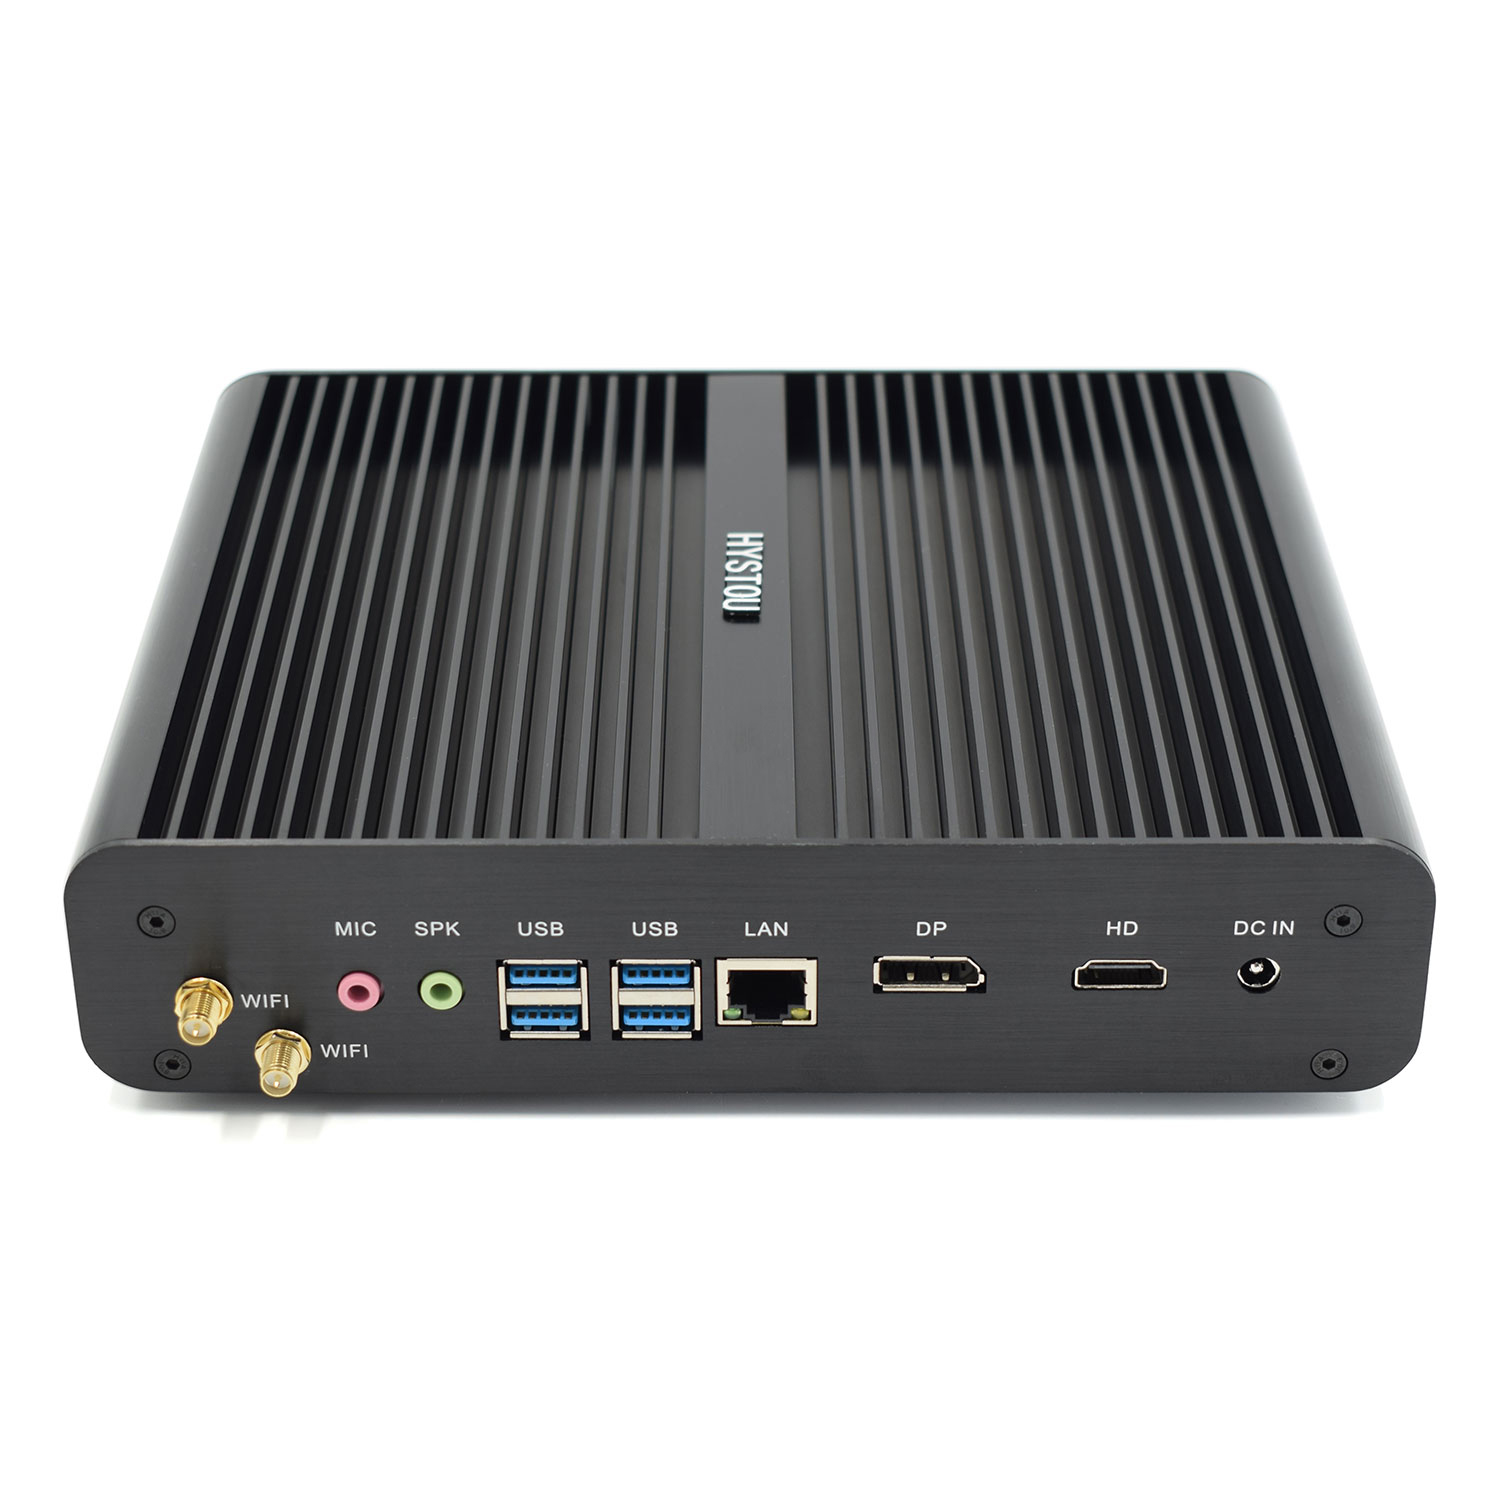 Hystou fanless Mini PC Small Form Core i7 8550U Computers with 2 SSD 1 HDD dual display and Gigabit Lan USB 4G RAM+ 64G SSD